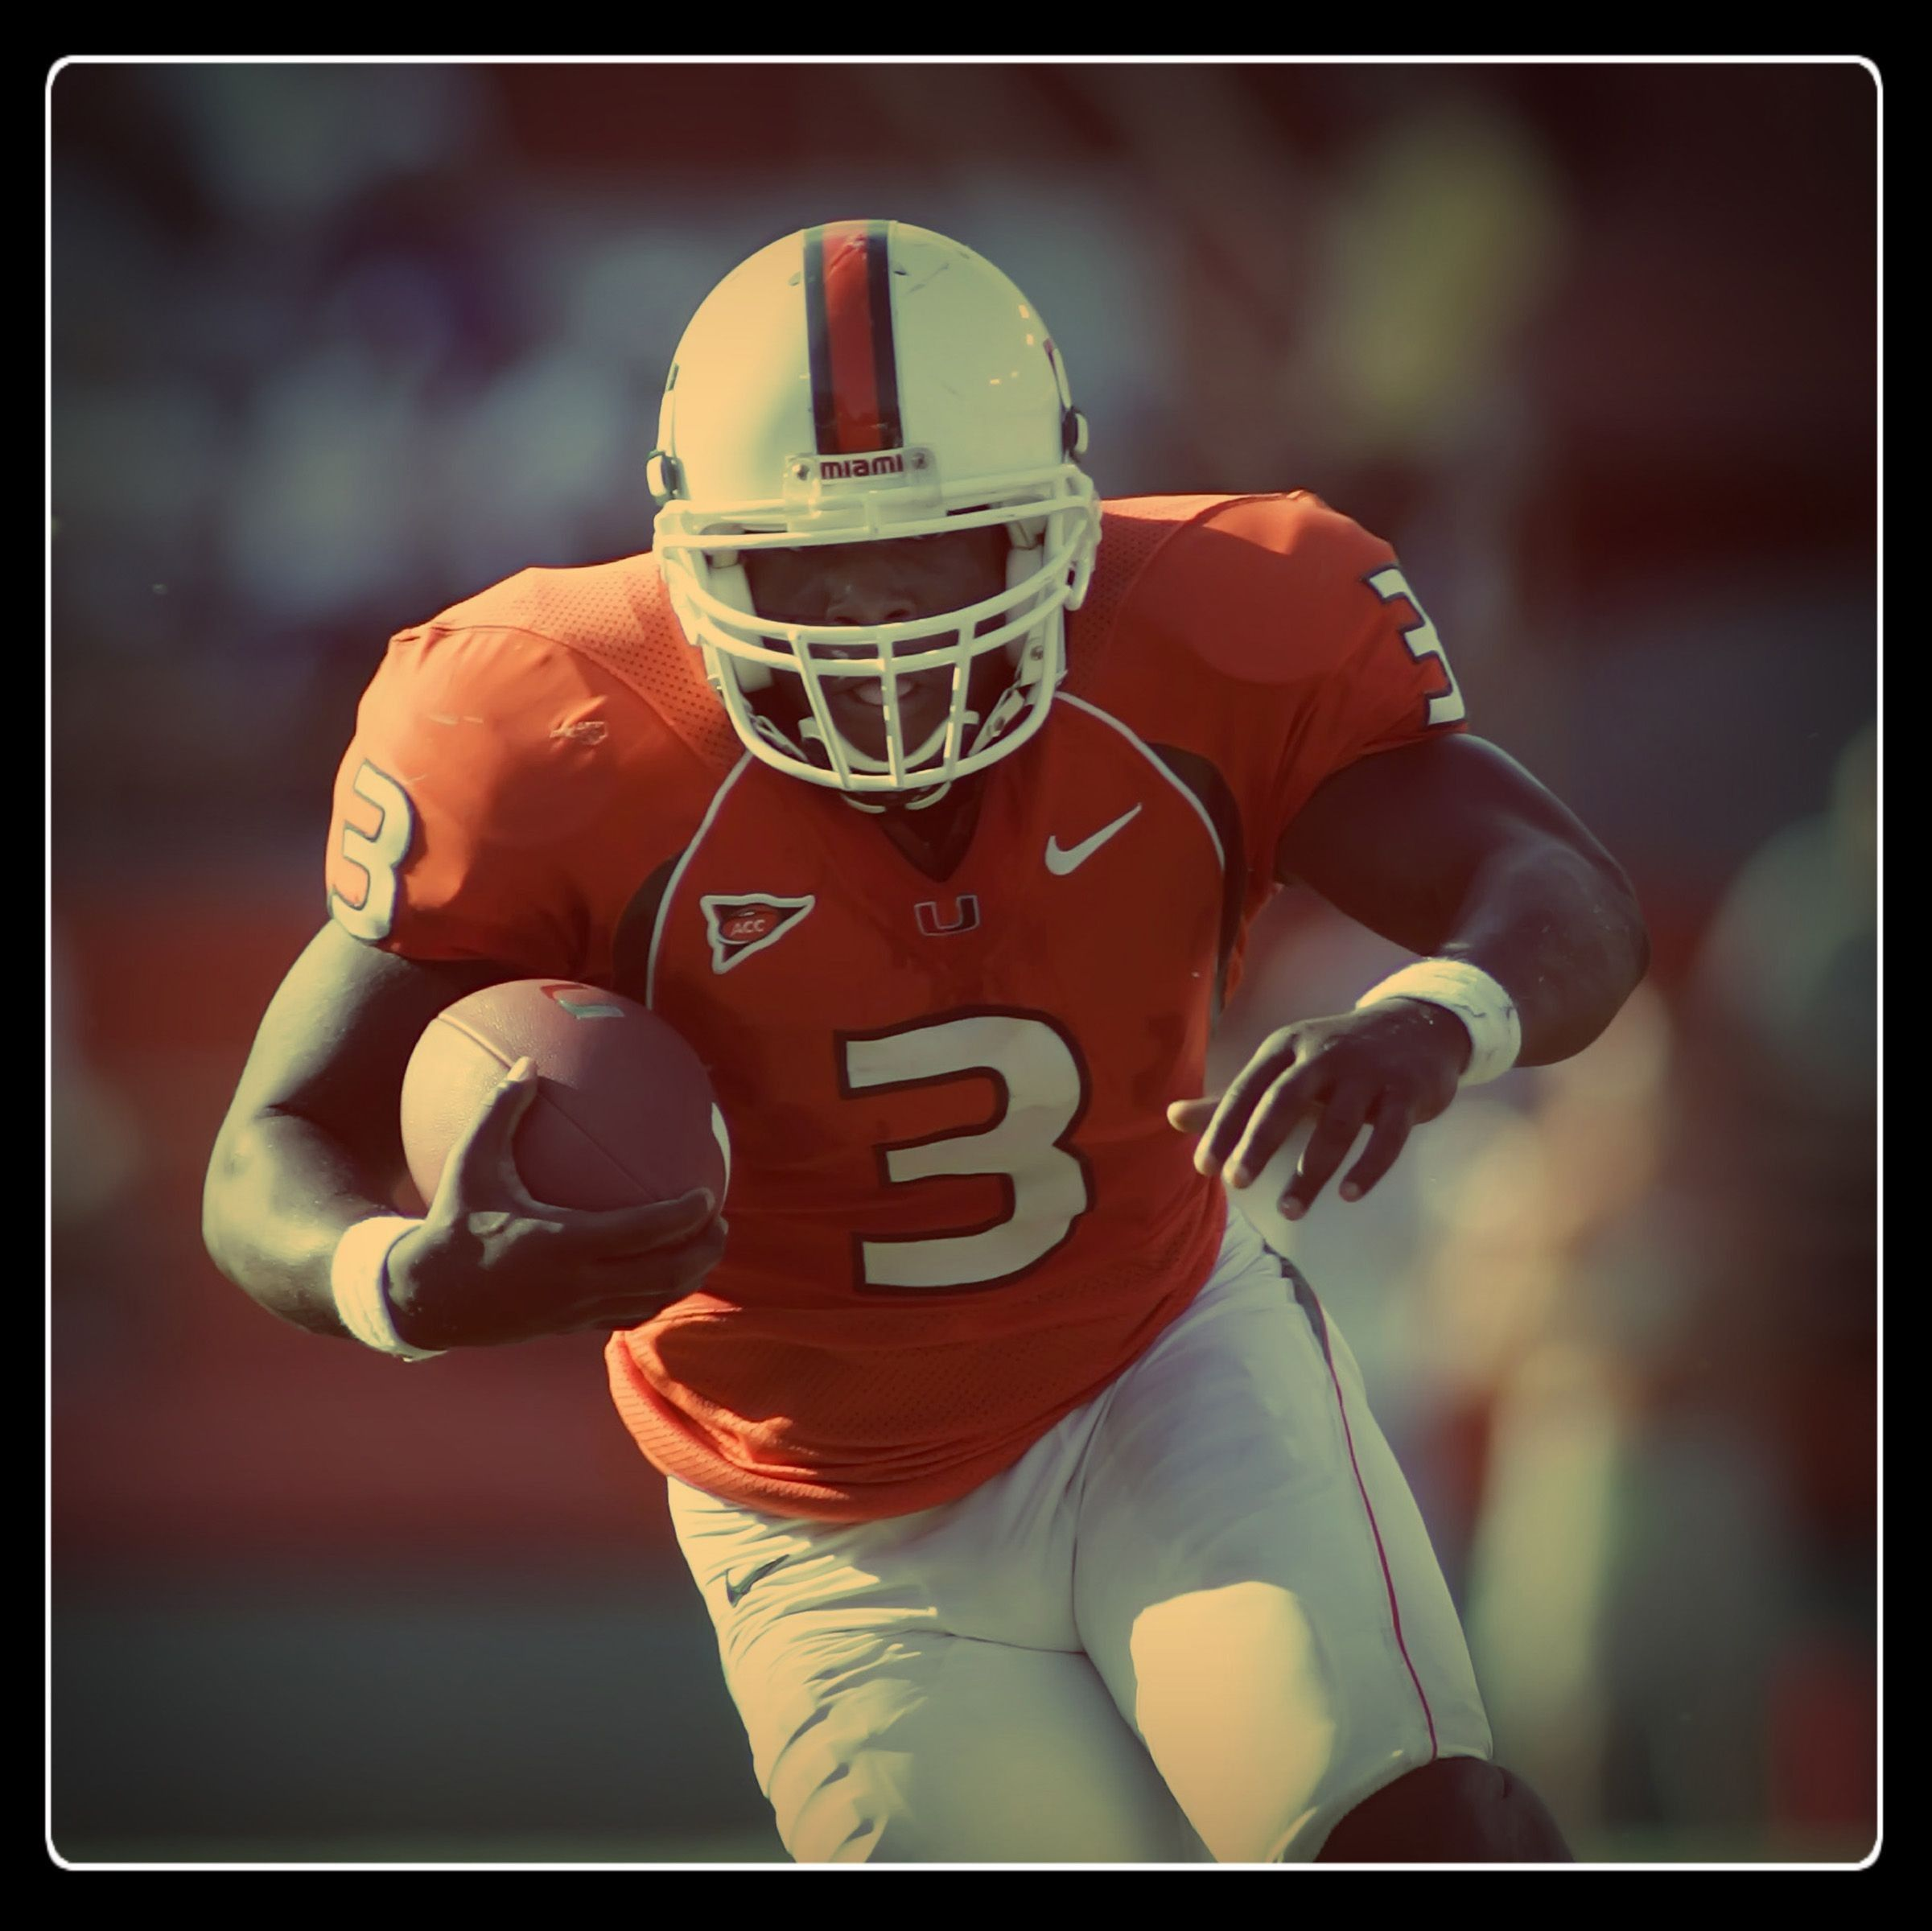 Luxury Miami Hurricanes Pictures Miami hurricanes